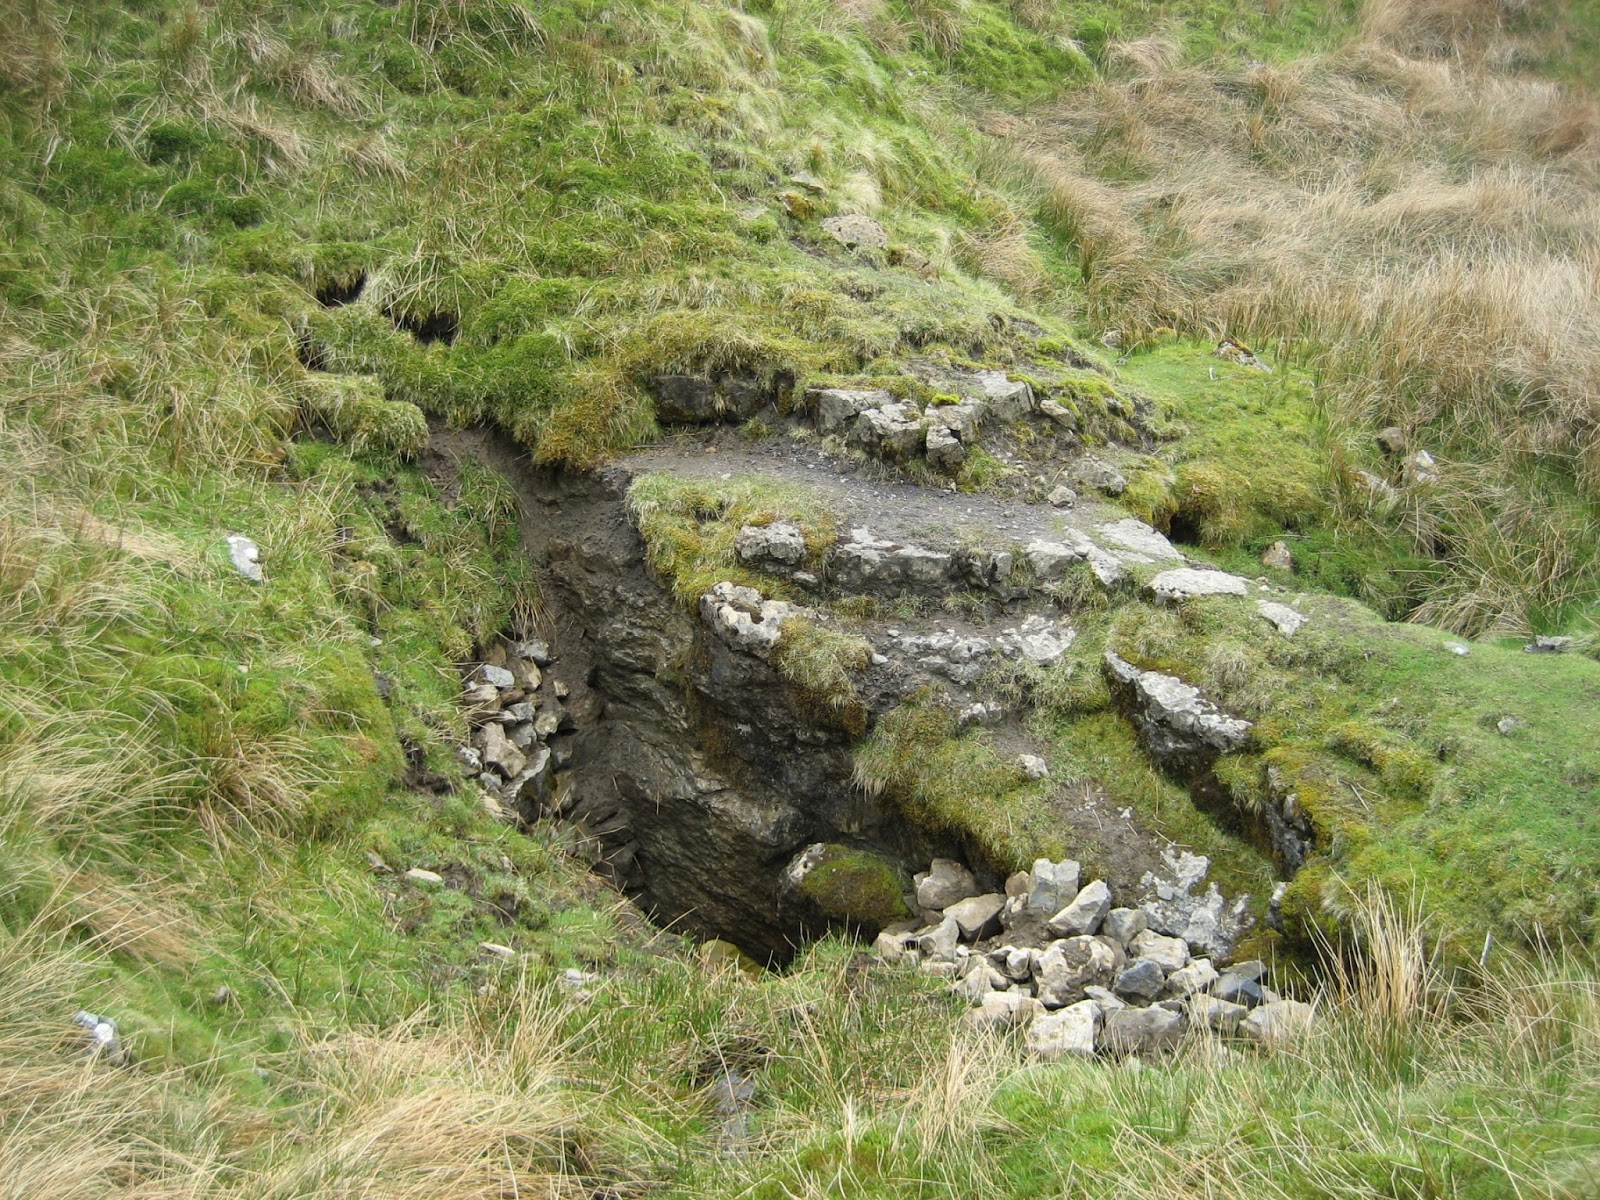 Newby Moss Pot, lying on a fault to the east of Grey Wife Sike: The bridge-like structure marking the entrance. Stephen Oldfield